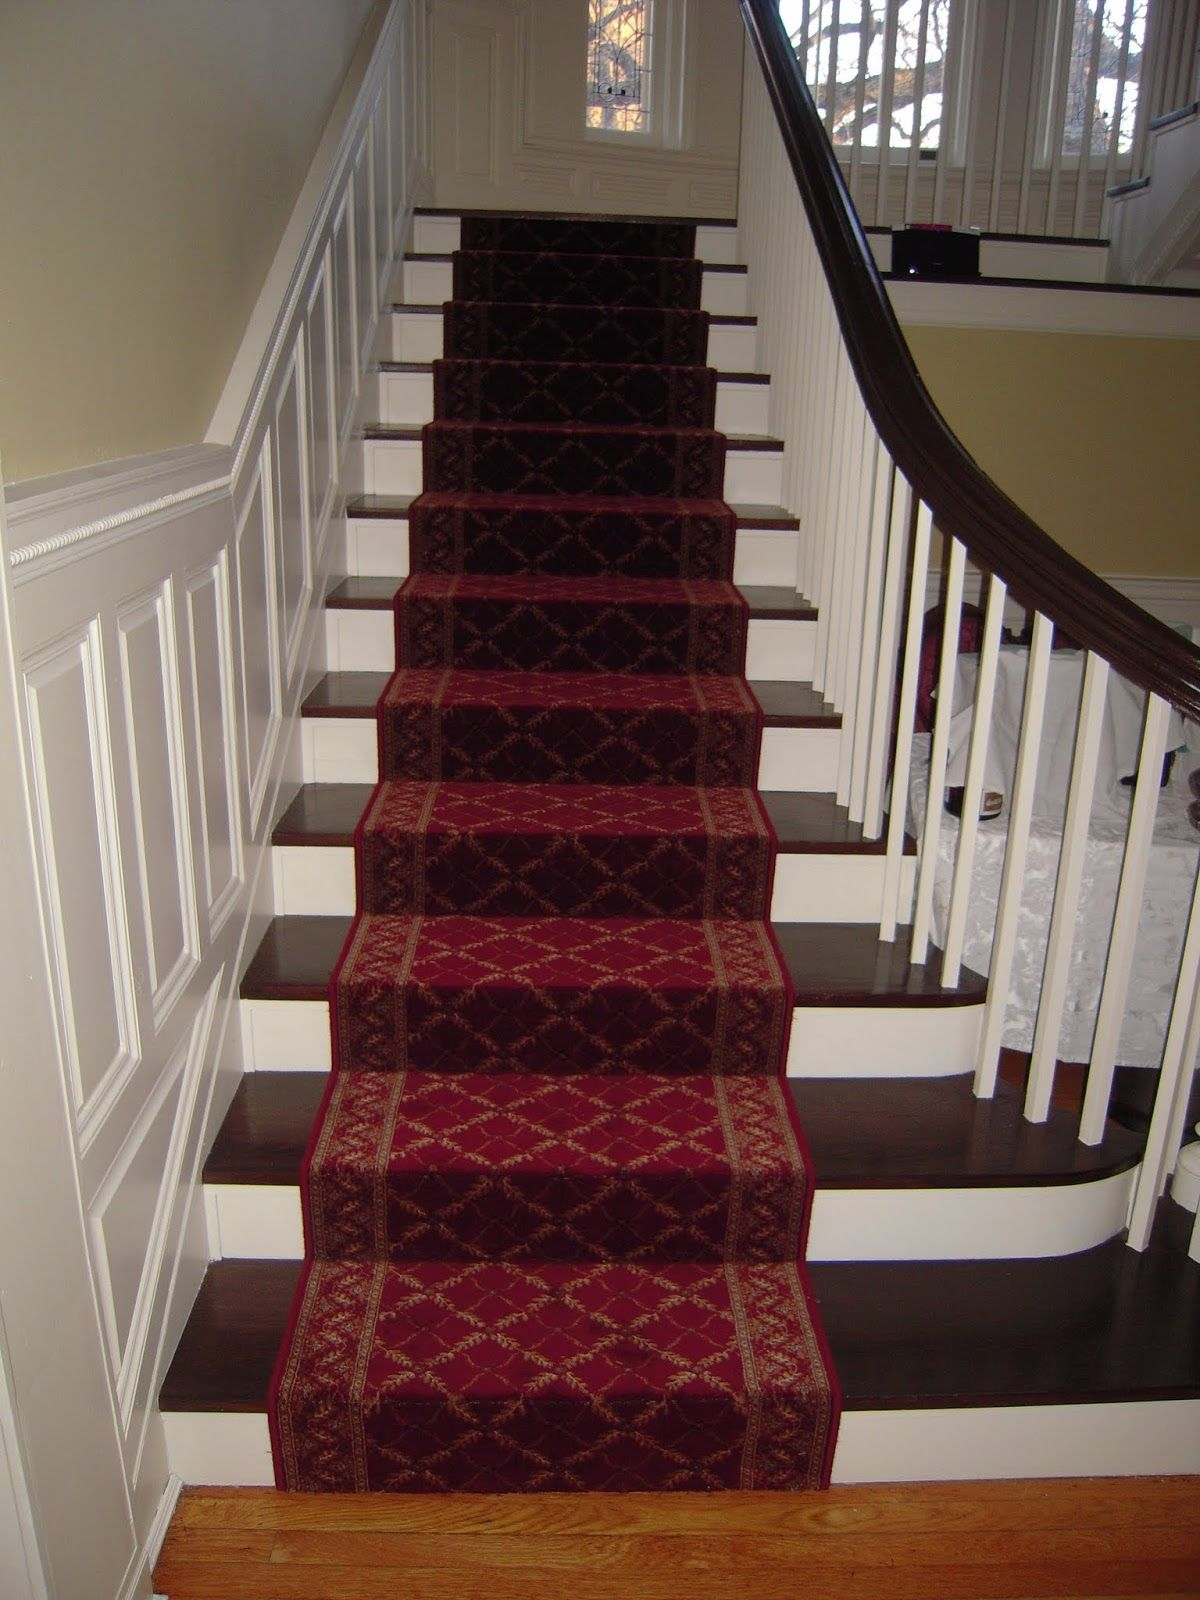 Inspiration About Flooring Stair Treads Carpet Carpet Tread Carpet Treads  For Inside Stick On Carpet For